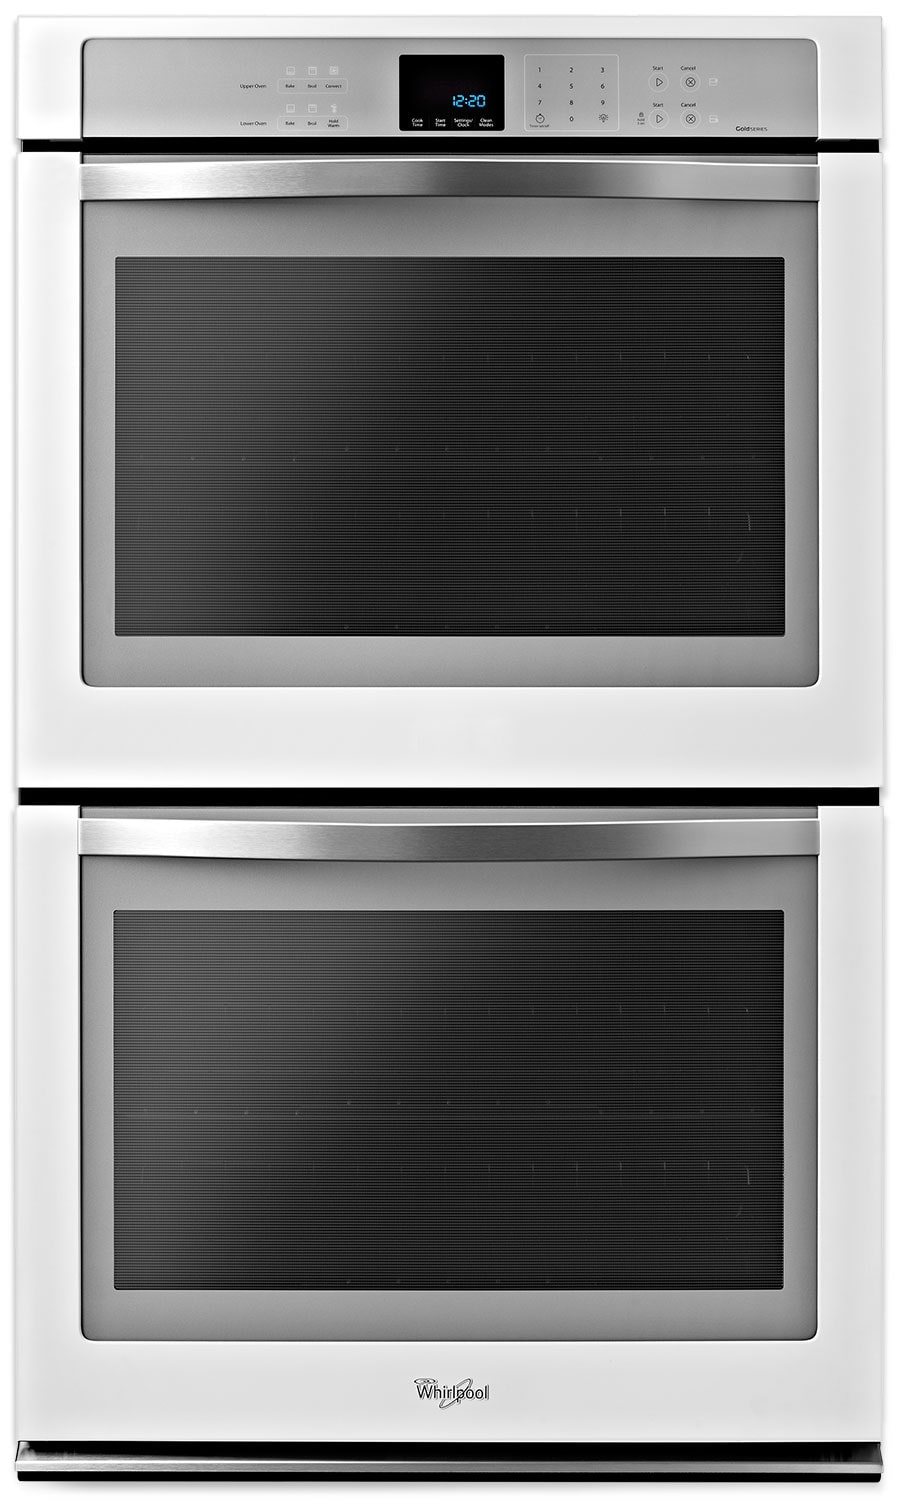 Cooking Products - Whirlpool Gold 10 Cu. Ft. Double Wall Oven with – WOD93EC0AH